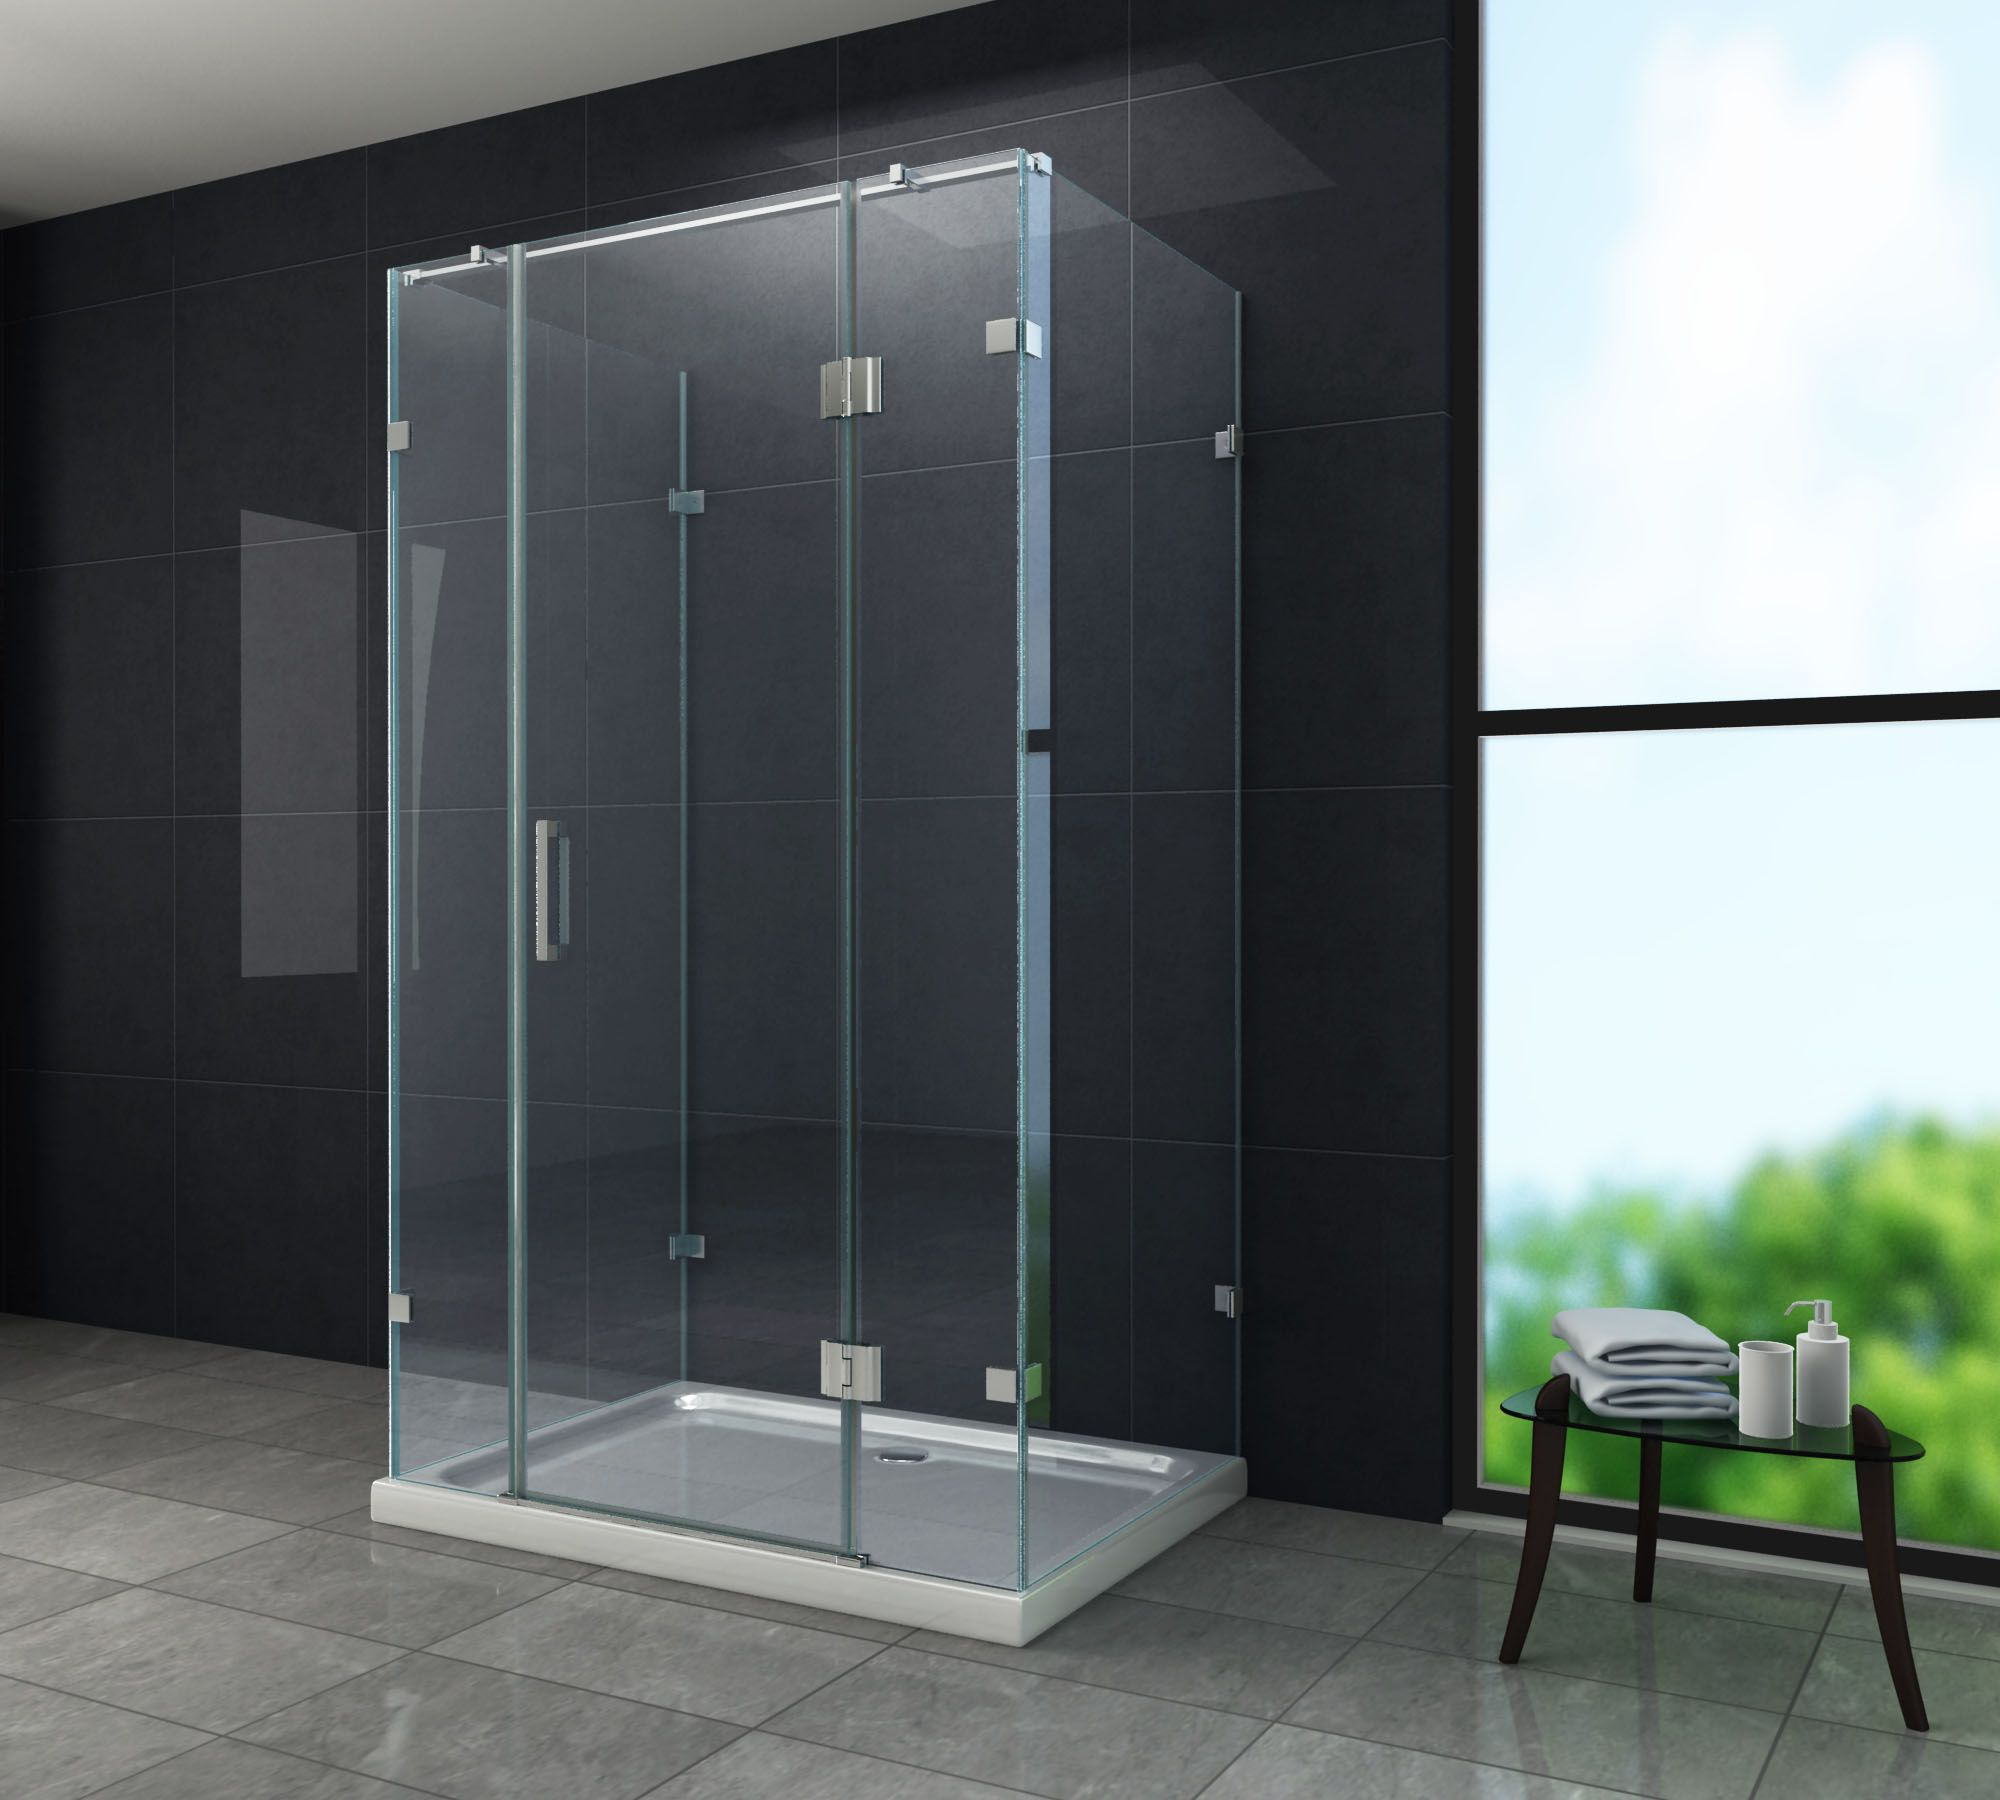 paroi de douche en u contor 1 porte 120 x 80 porte de douche 3 cotes. Black Bedroom Furniture Sets. Home Design Ideas